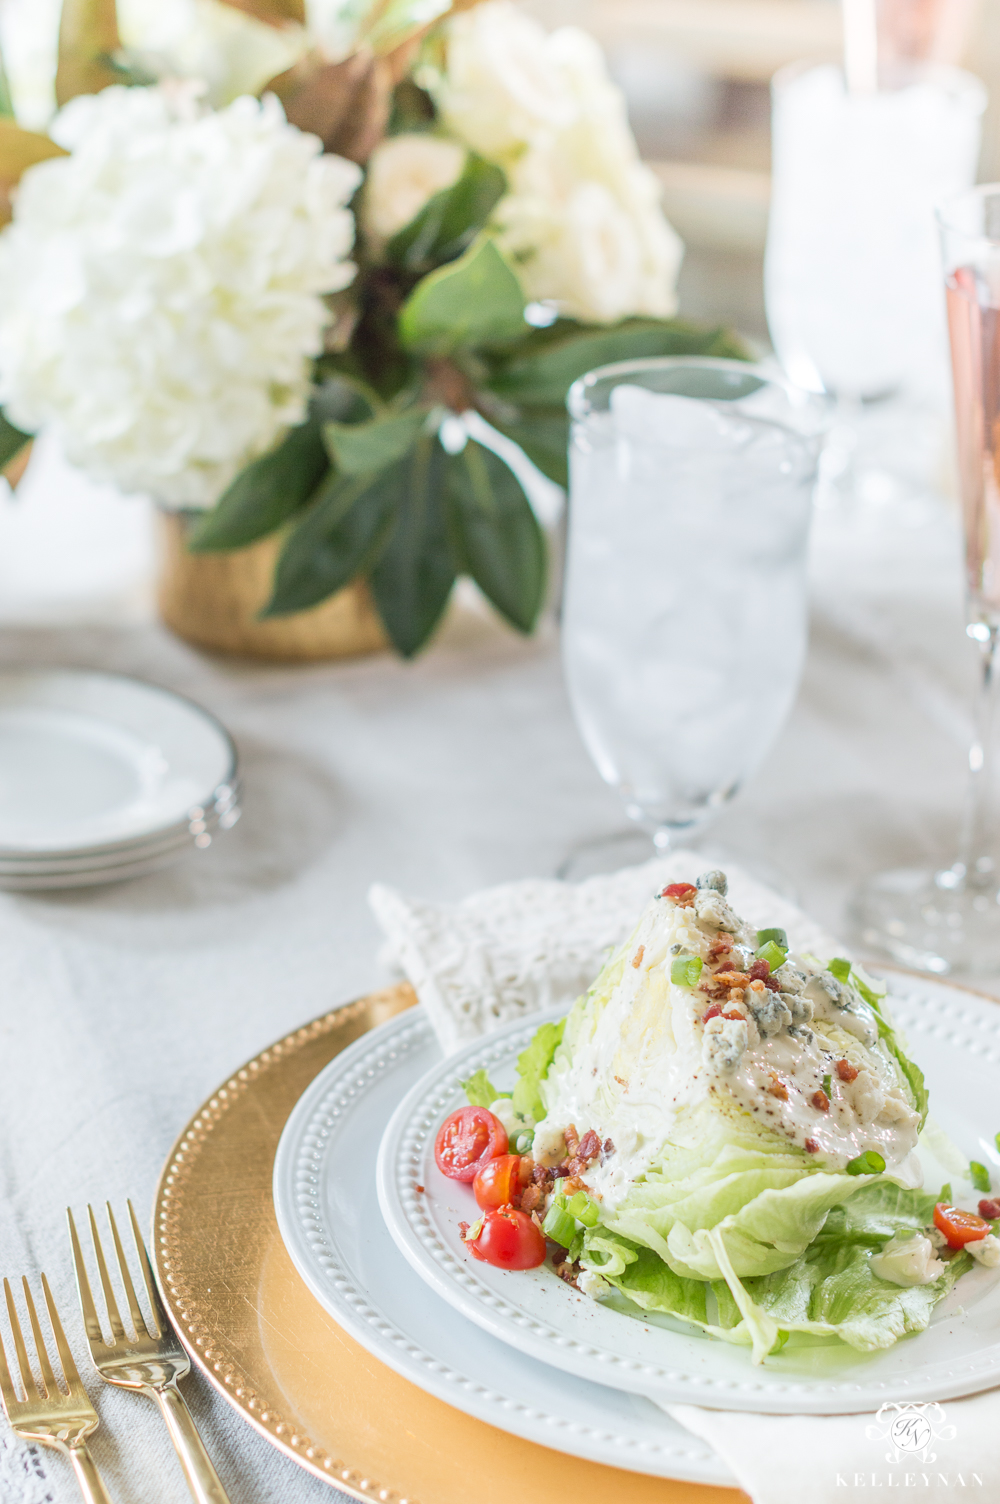 What to put on a wedge salad for dinner guests